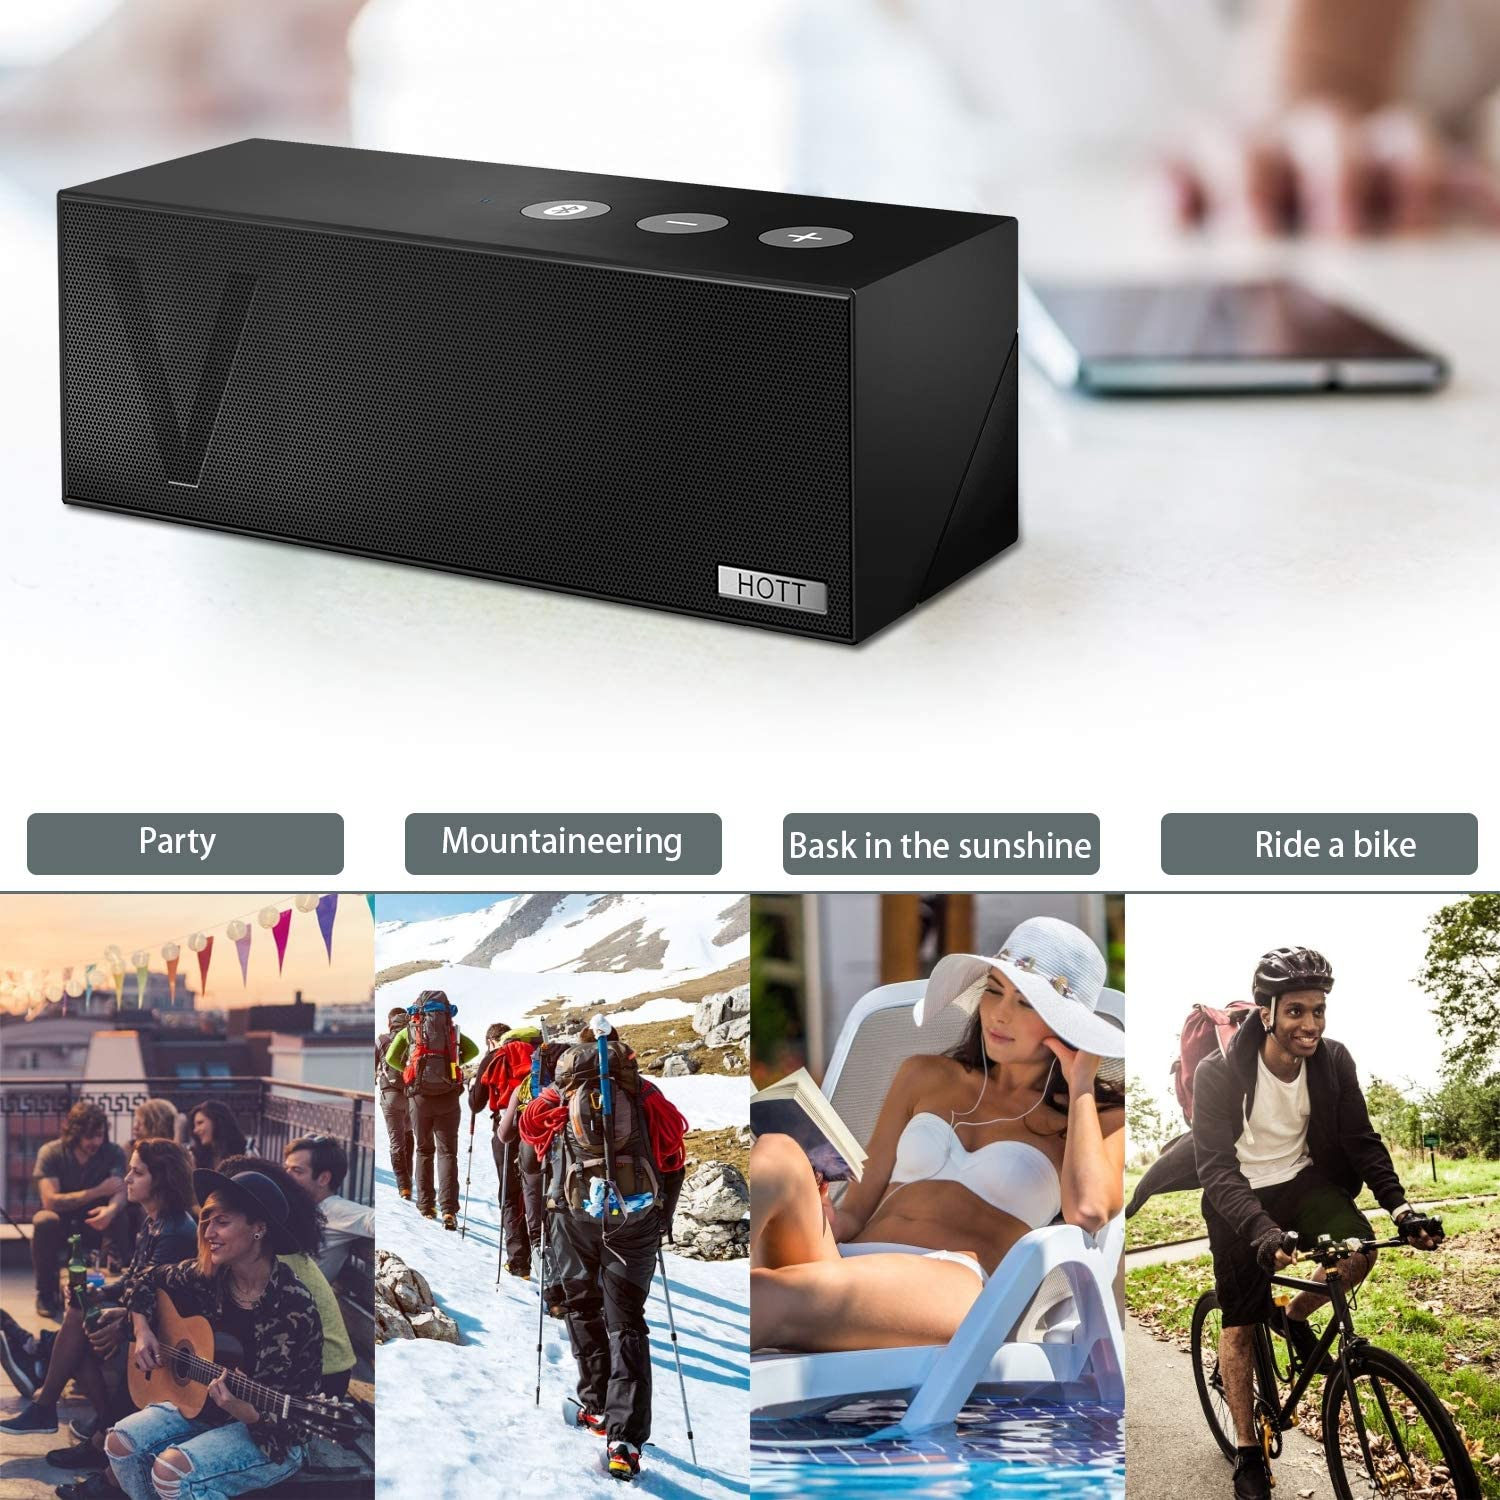 HOTT Portable Wireless Stereo Bluetooth Speaker Handsfree Function 20hours Playback Time